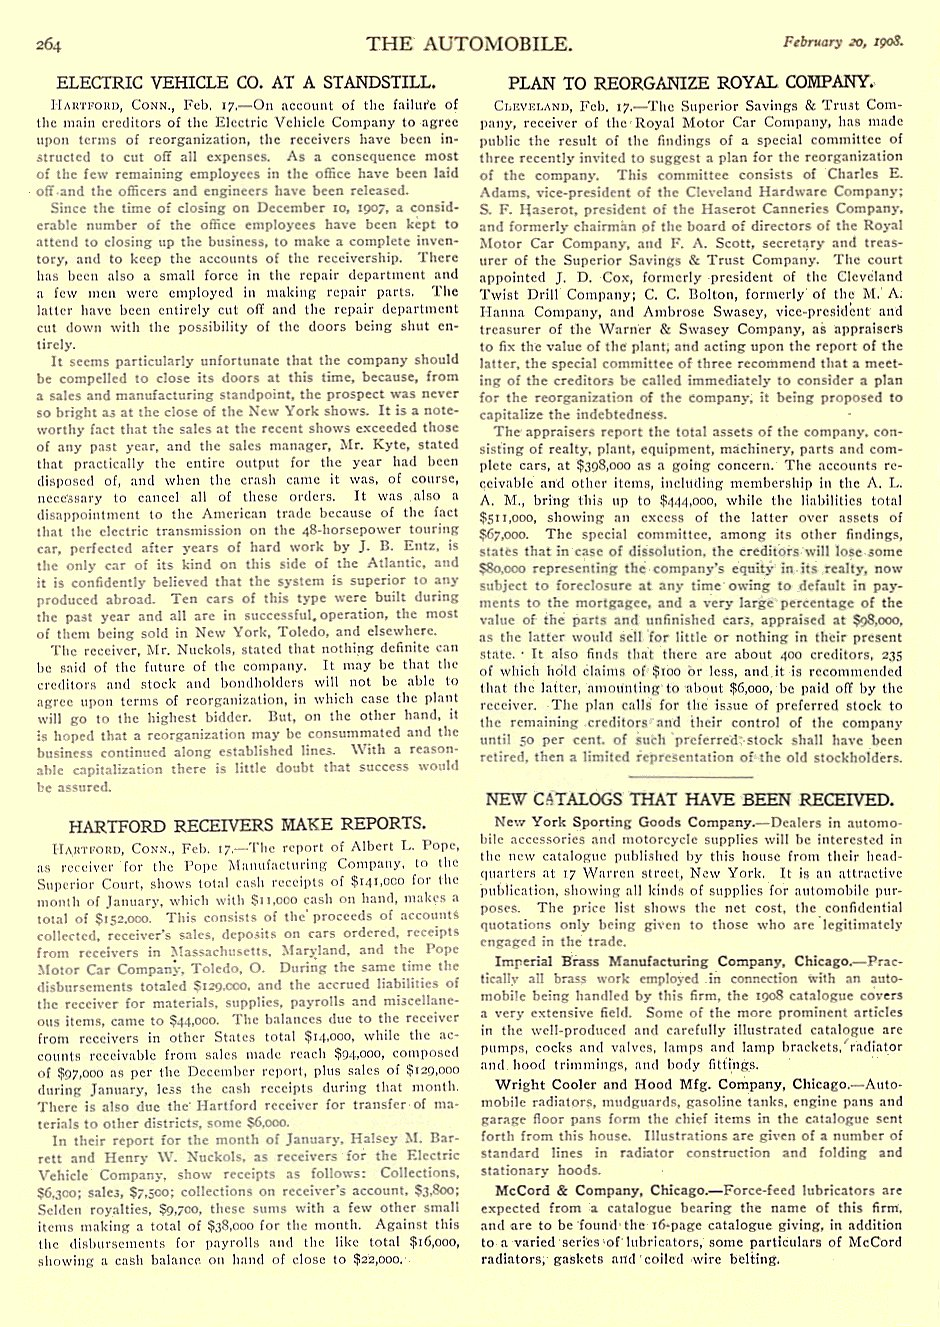 1908 2 20 ELECTRIC VEHICLE Company Article Electric Vehicle Co. At A Standstill THE AUTOMOBILE February 20, 1908 University of Minnesota Library 8.25″x11.75″ page 264